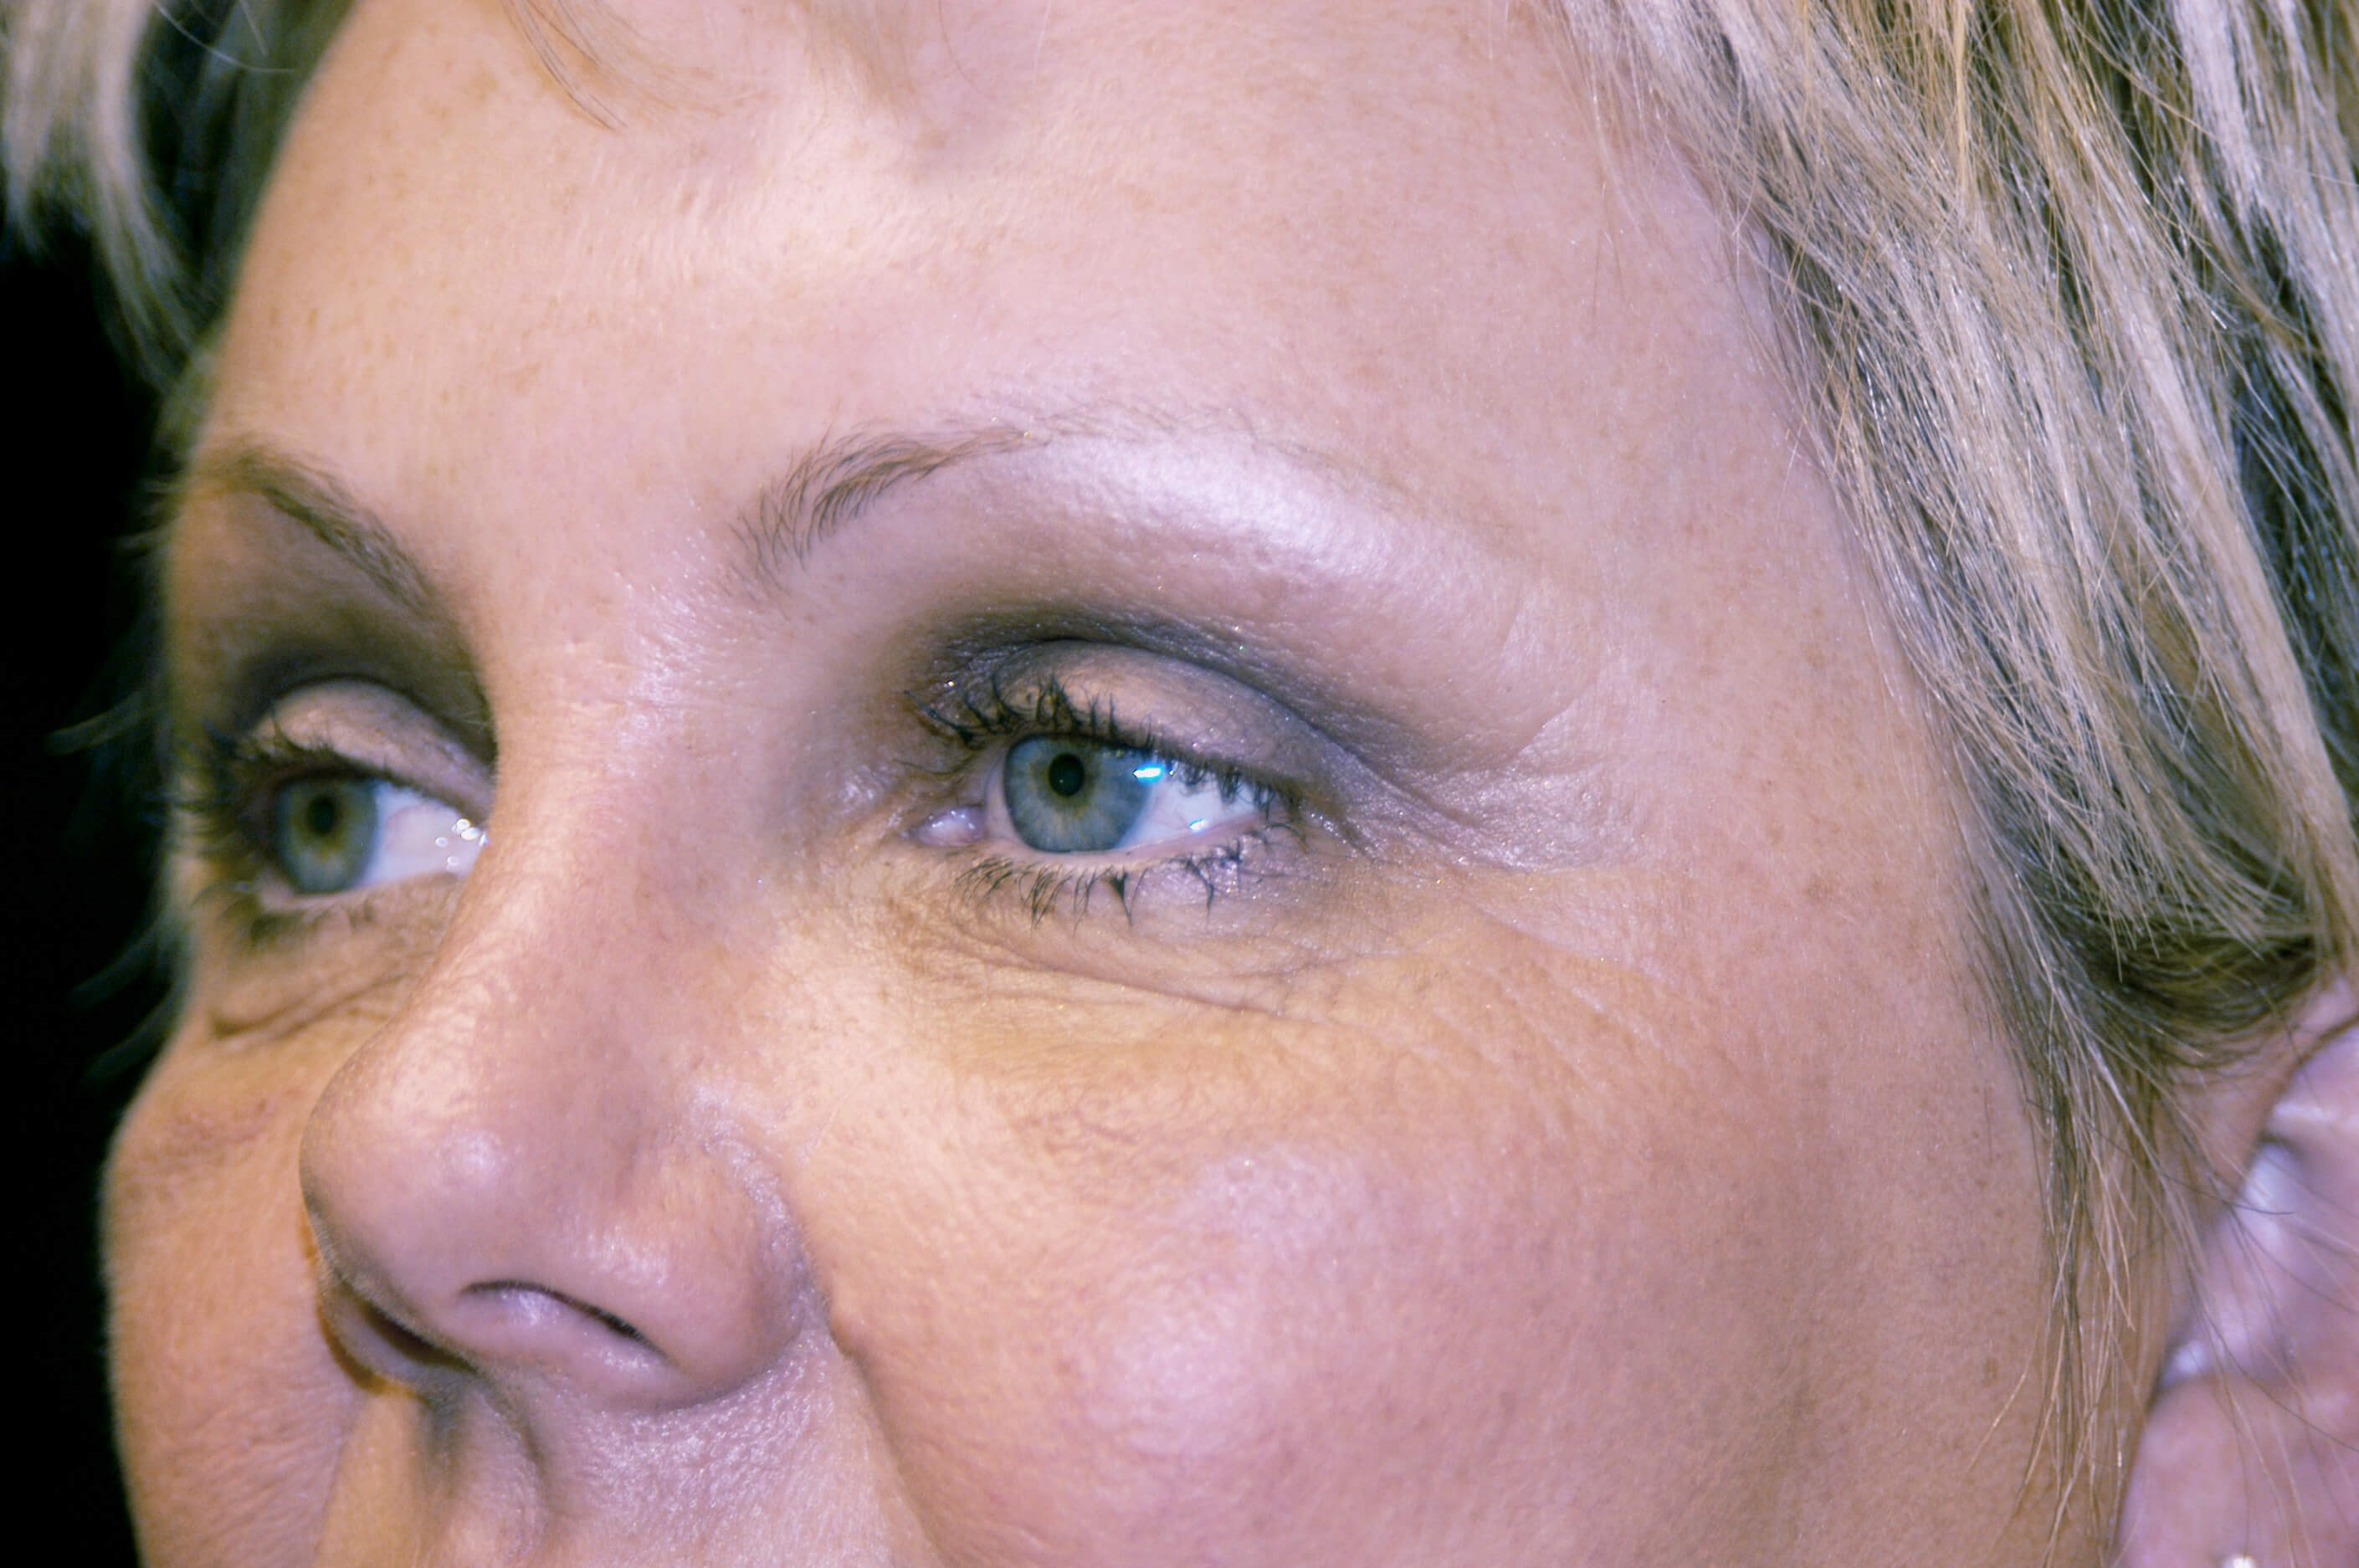 Brow Lift Procedure After